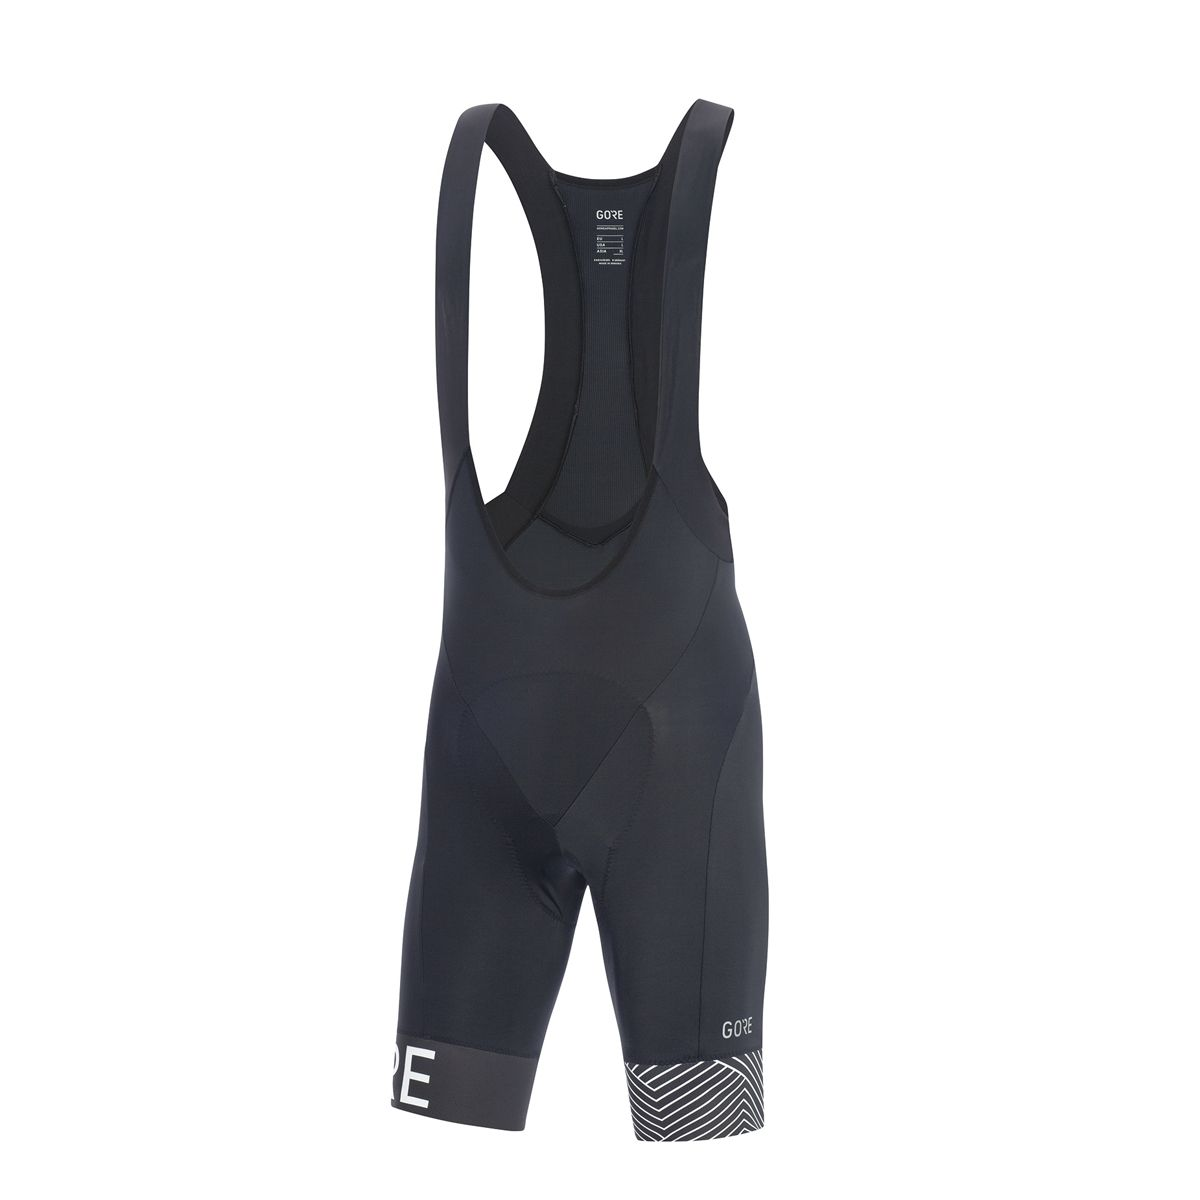 C5 OPTILINE BIB SHORTS+